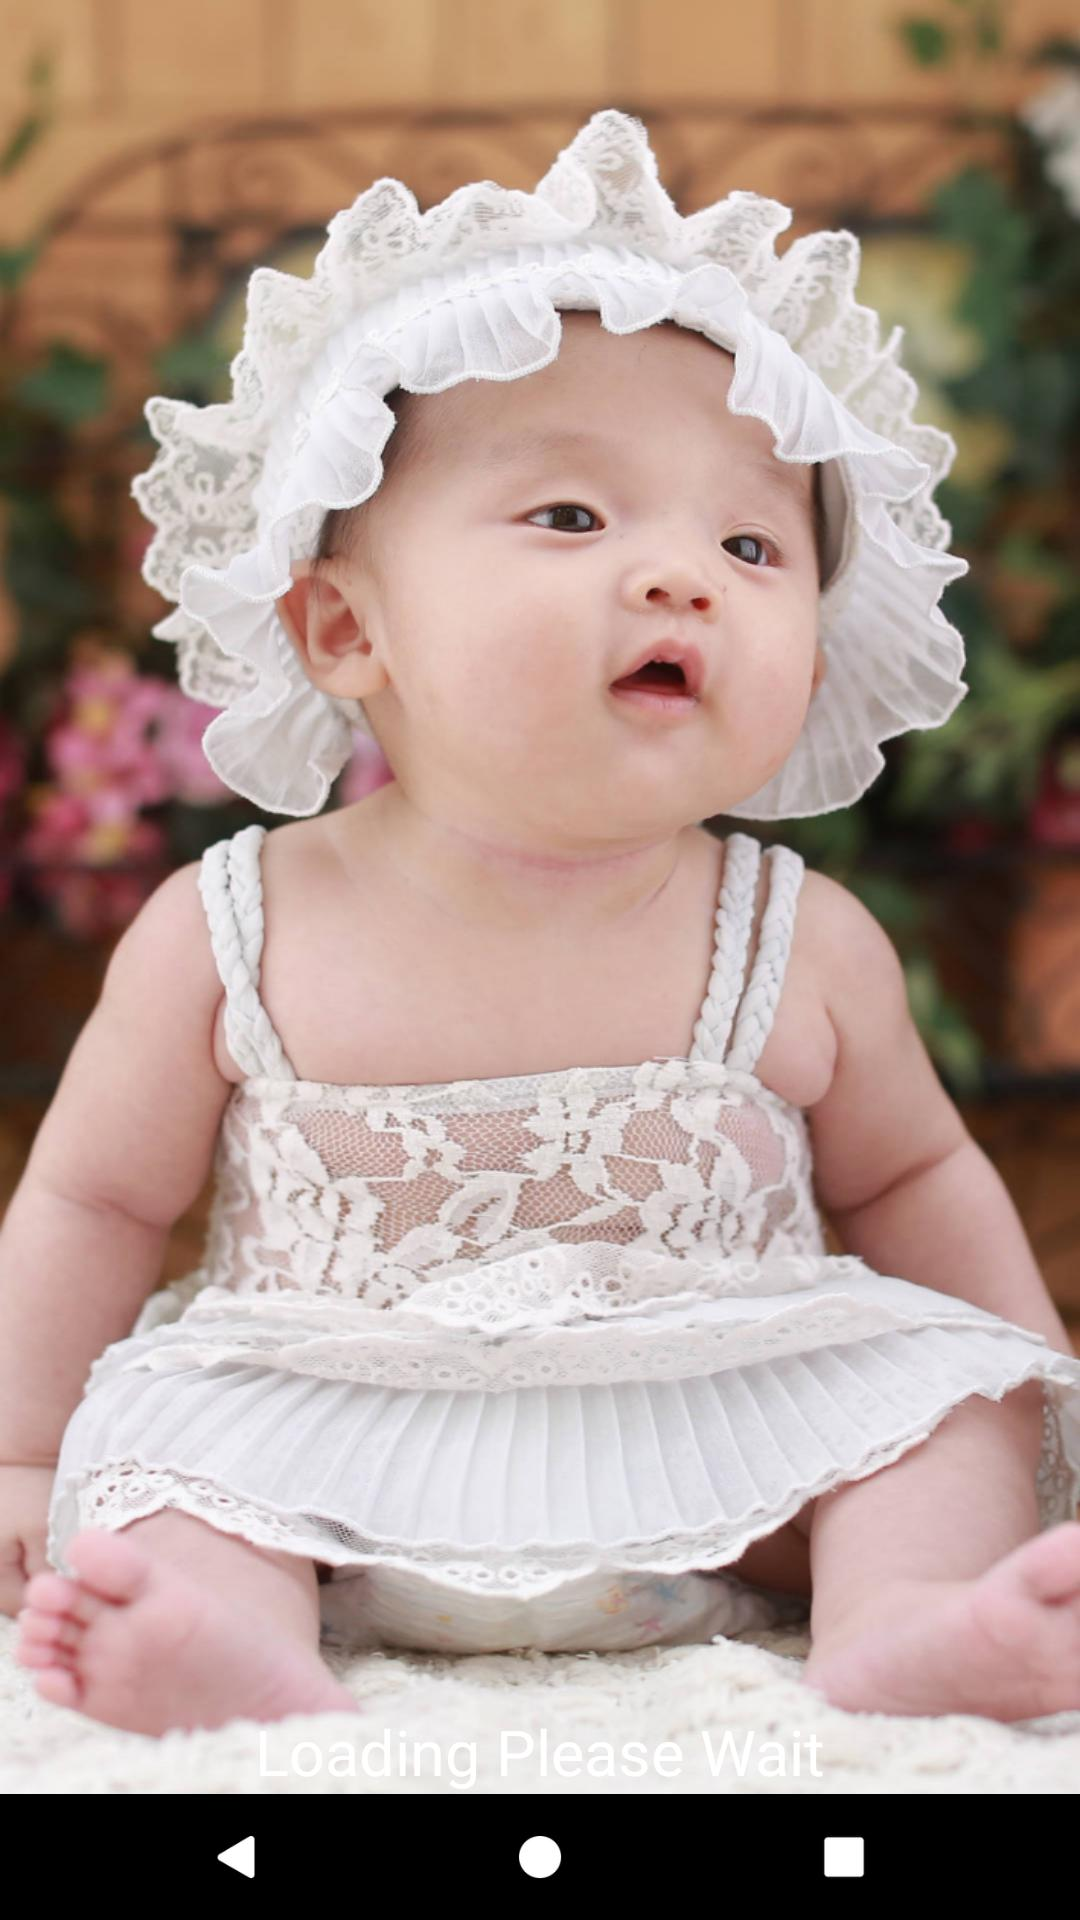 Cute Baby Wallpapers HD (Offline) for Android - APK Download